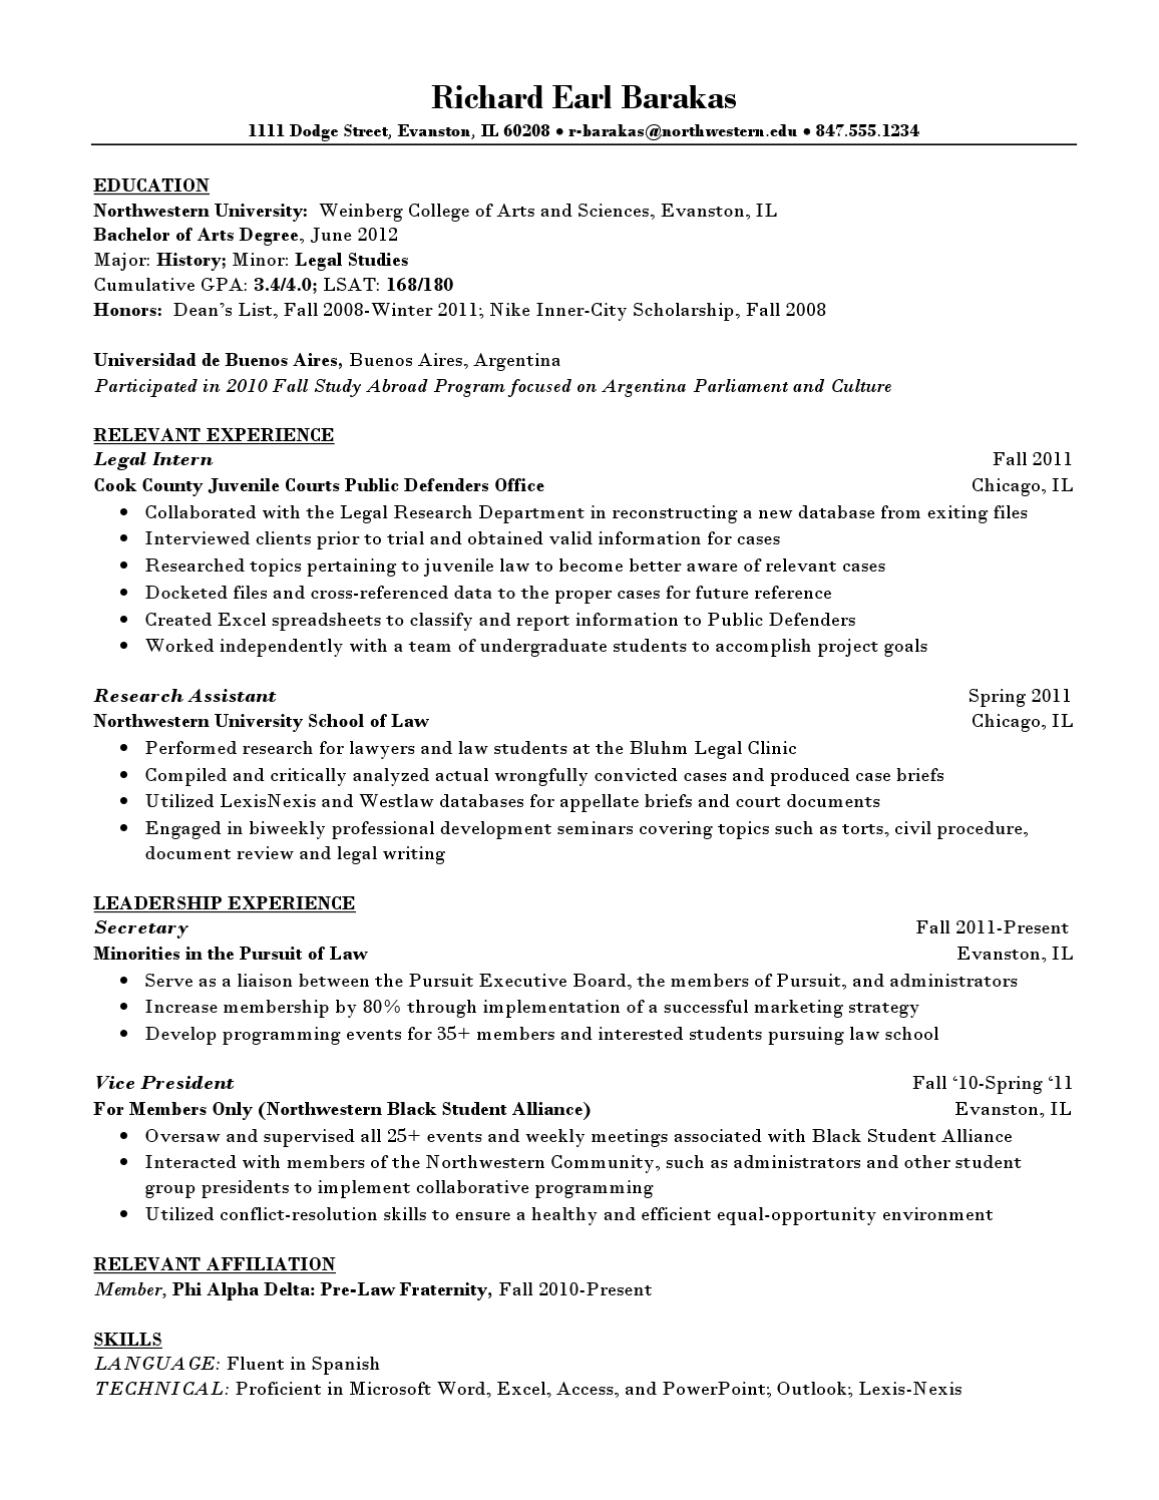 How To Put Bachelor Degree On Resume How To Write Bachelor Of Arts Degree On Resume Liberal